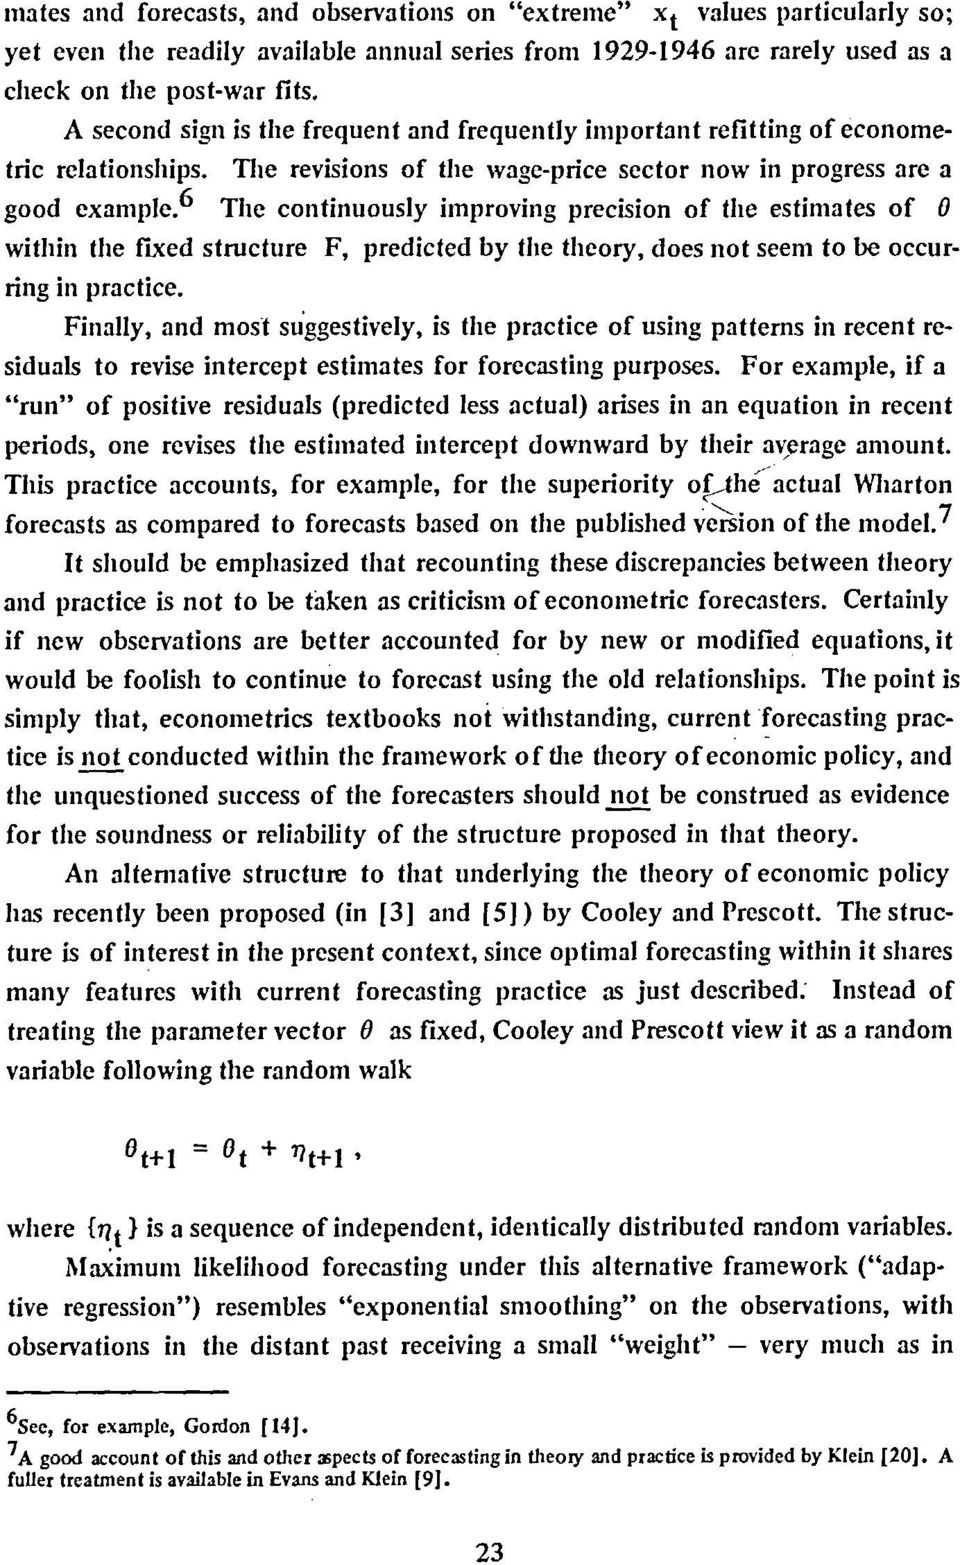 6 The continuously improving precision of the estimates of 0 within the fixed structure F, predicted by the theory, does not seem to be occur- ring in practice.